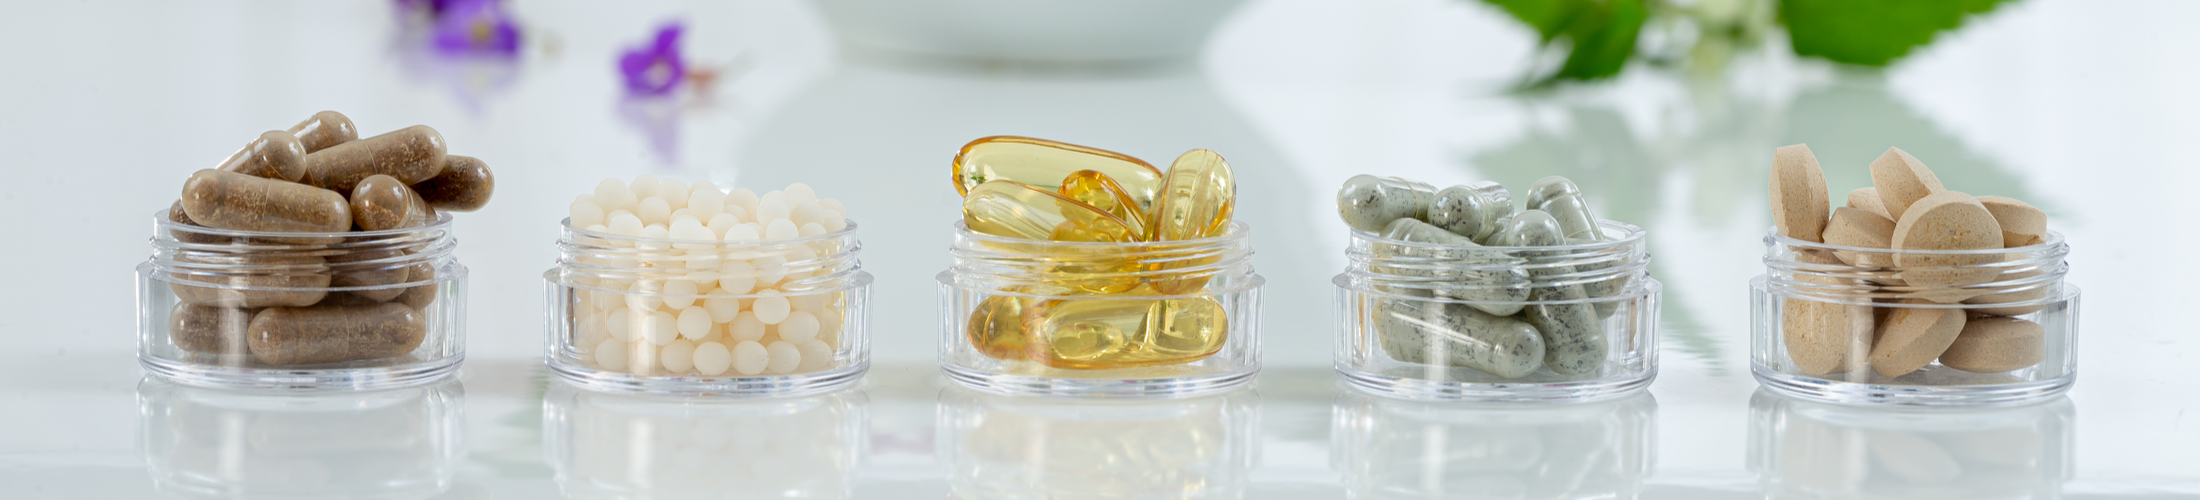 Private Label Food Supplements Manufacturers